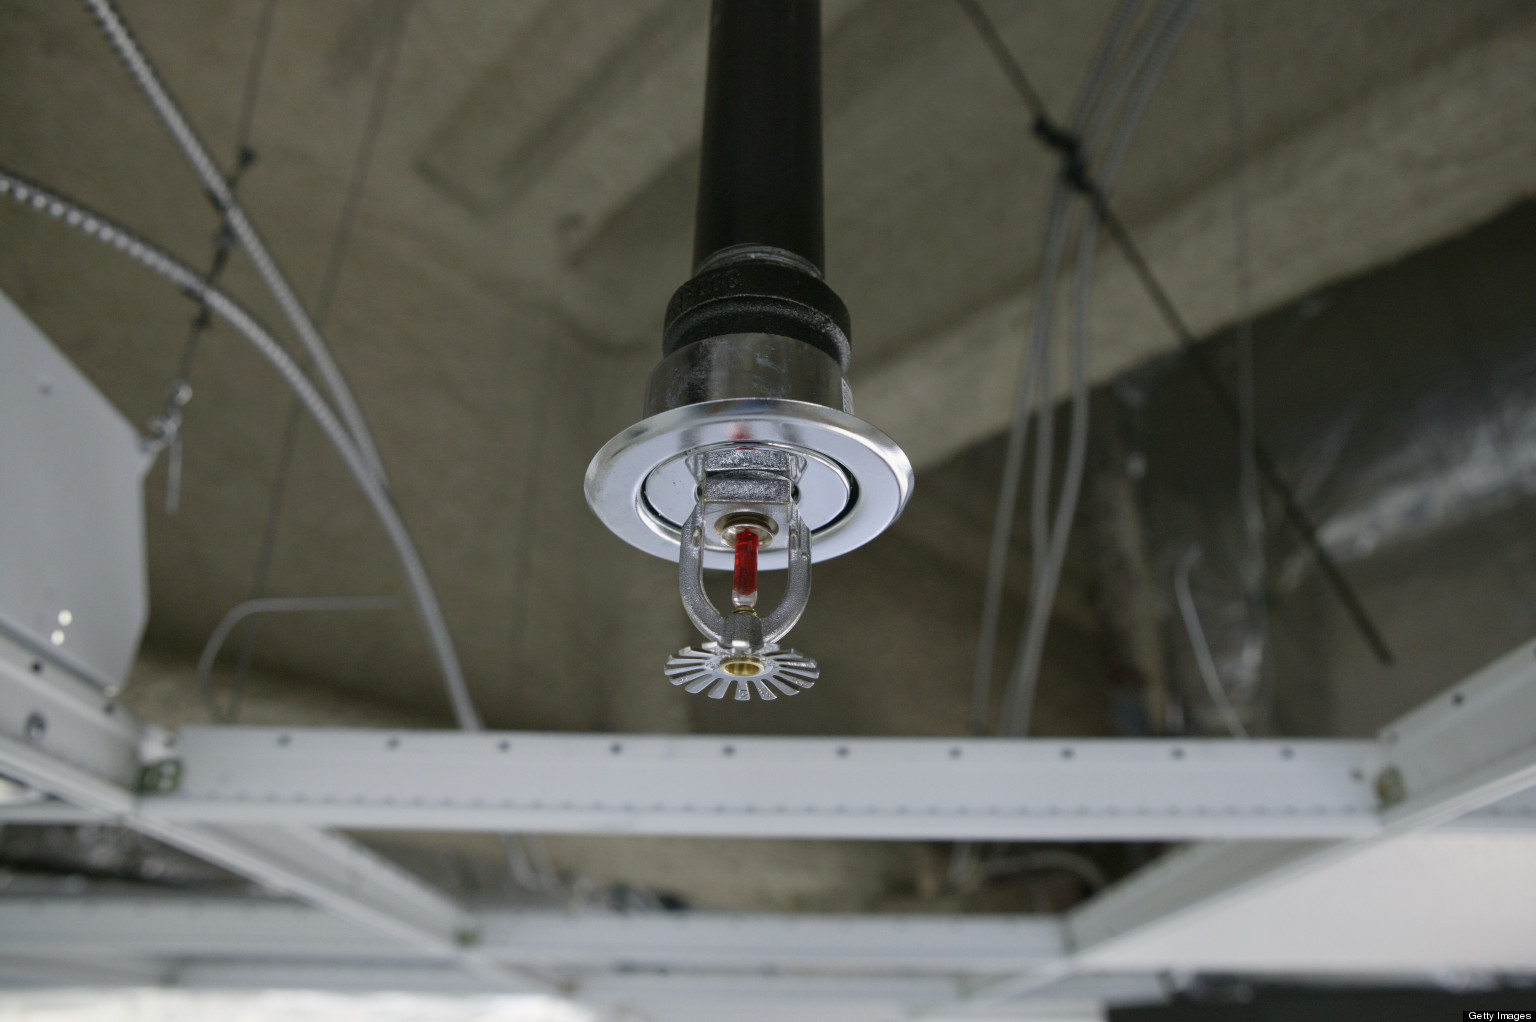 Illinois fire sprinkler law state could require